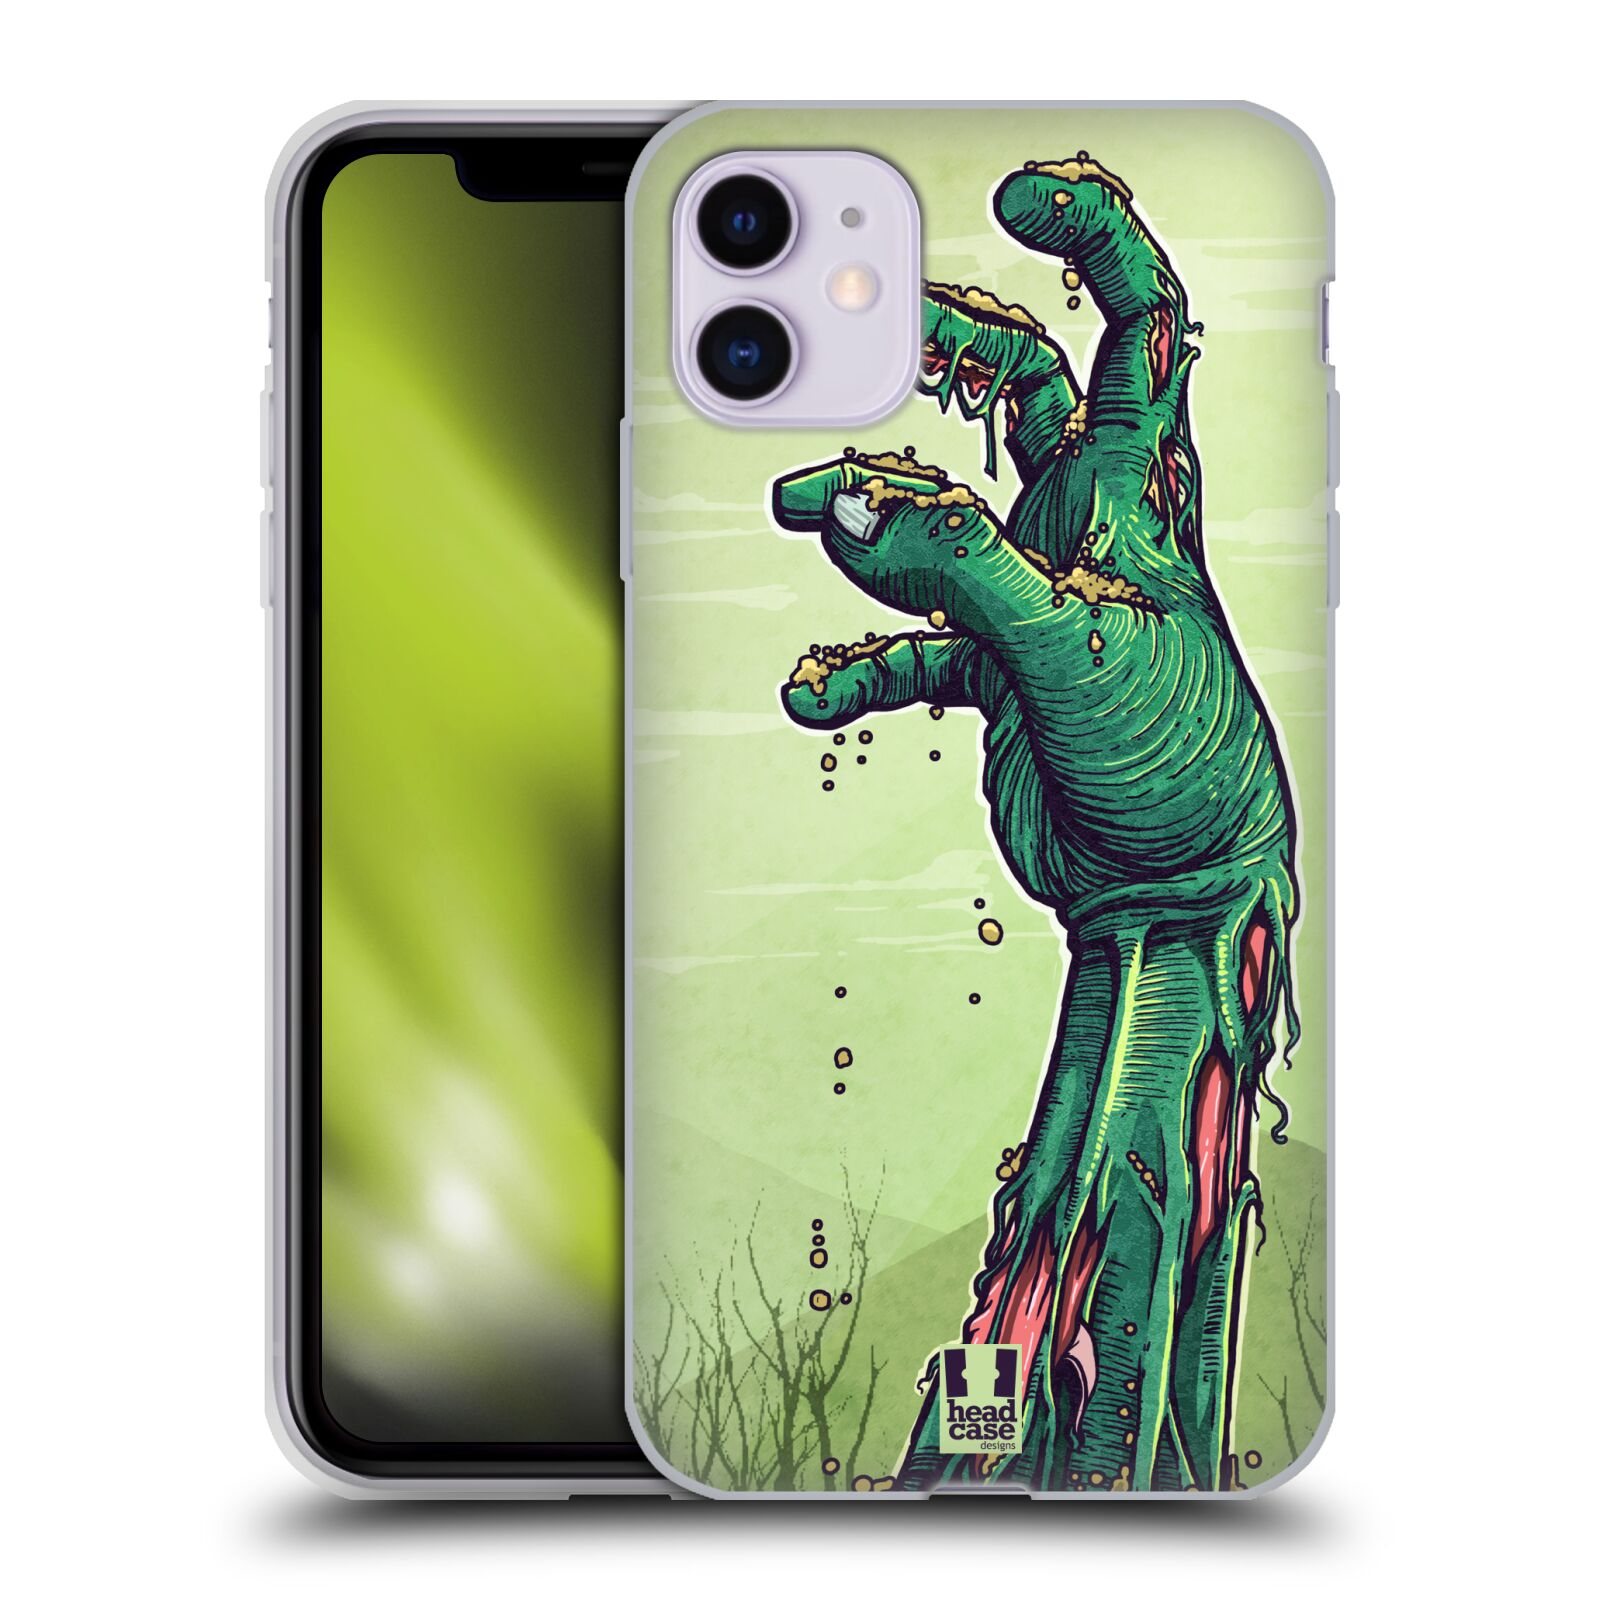 apple iphone xs max kryt | Silikonové pouzdro na mobil Apple iPhone 11 - Head Case - ZOMBIE RUKA